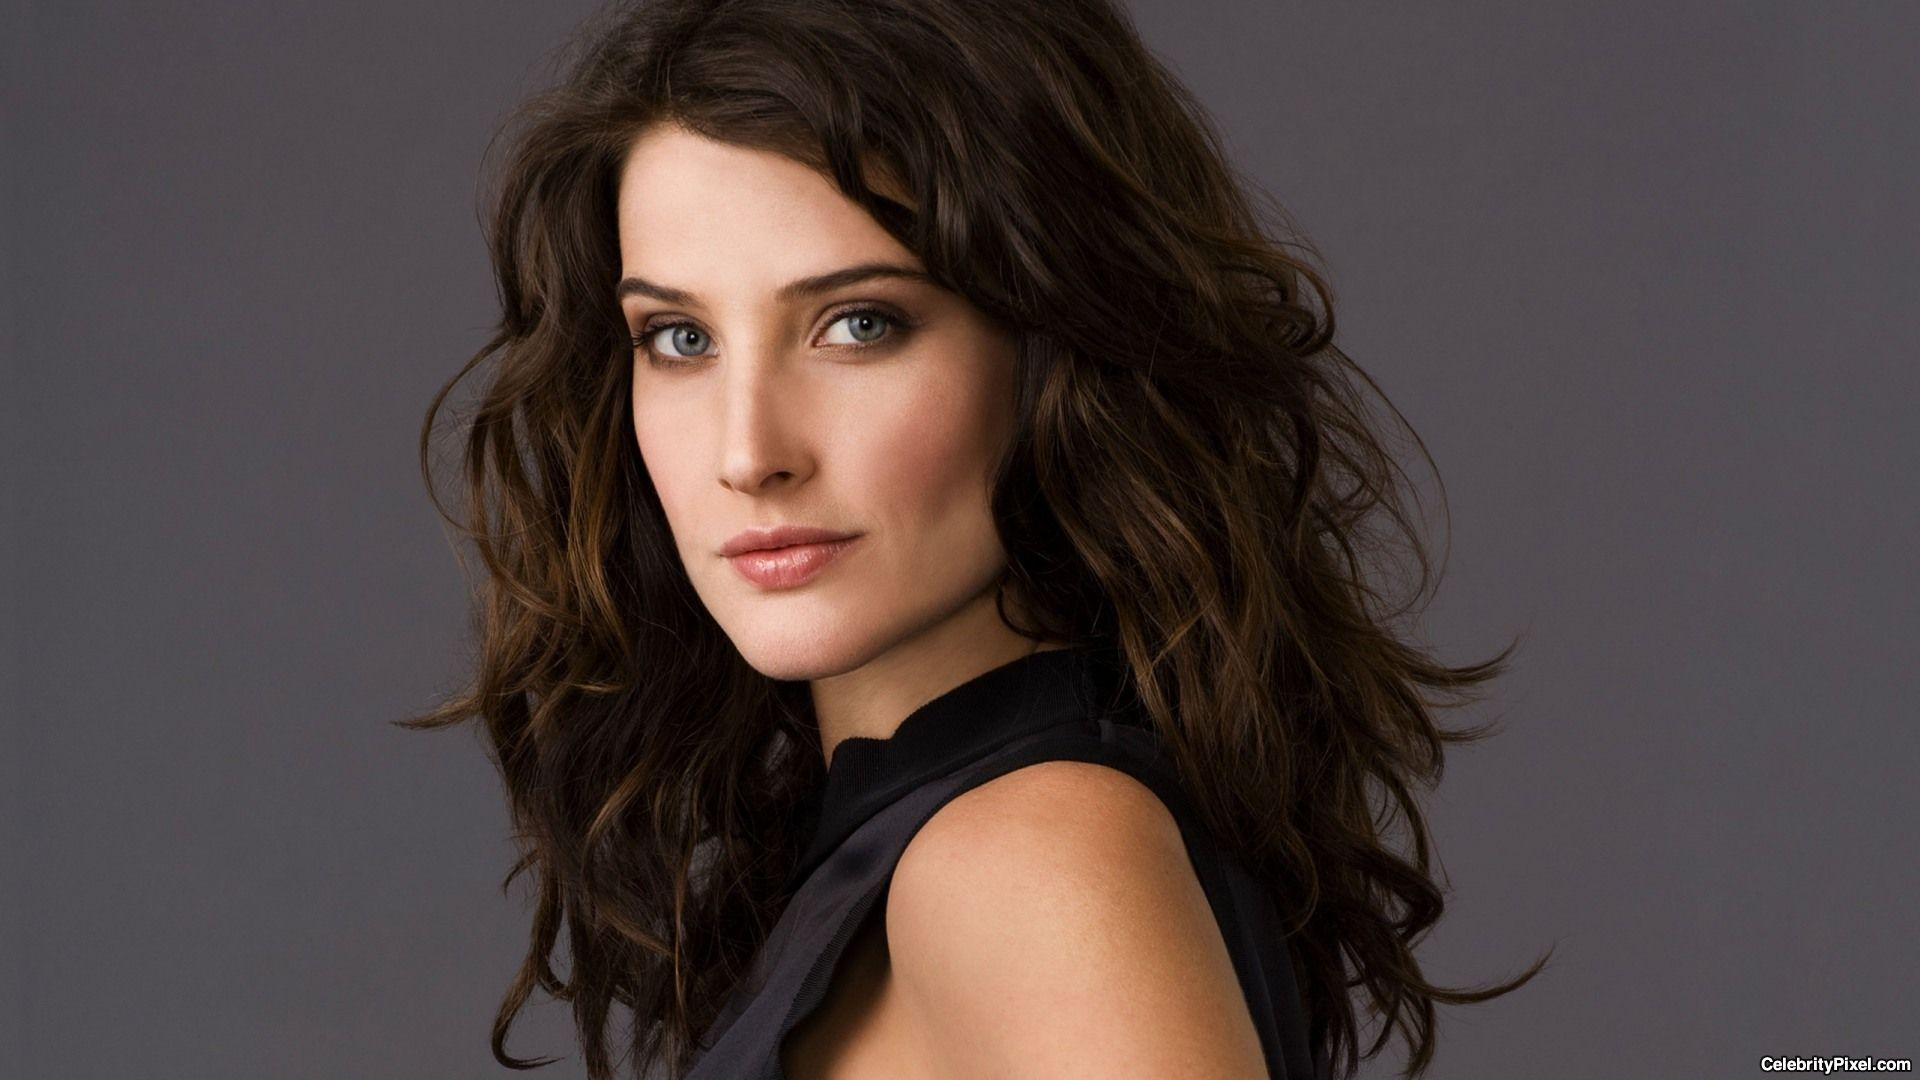 cobie smulders wallpapers - photo #19